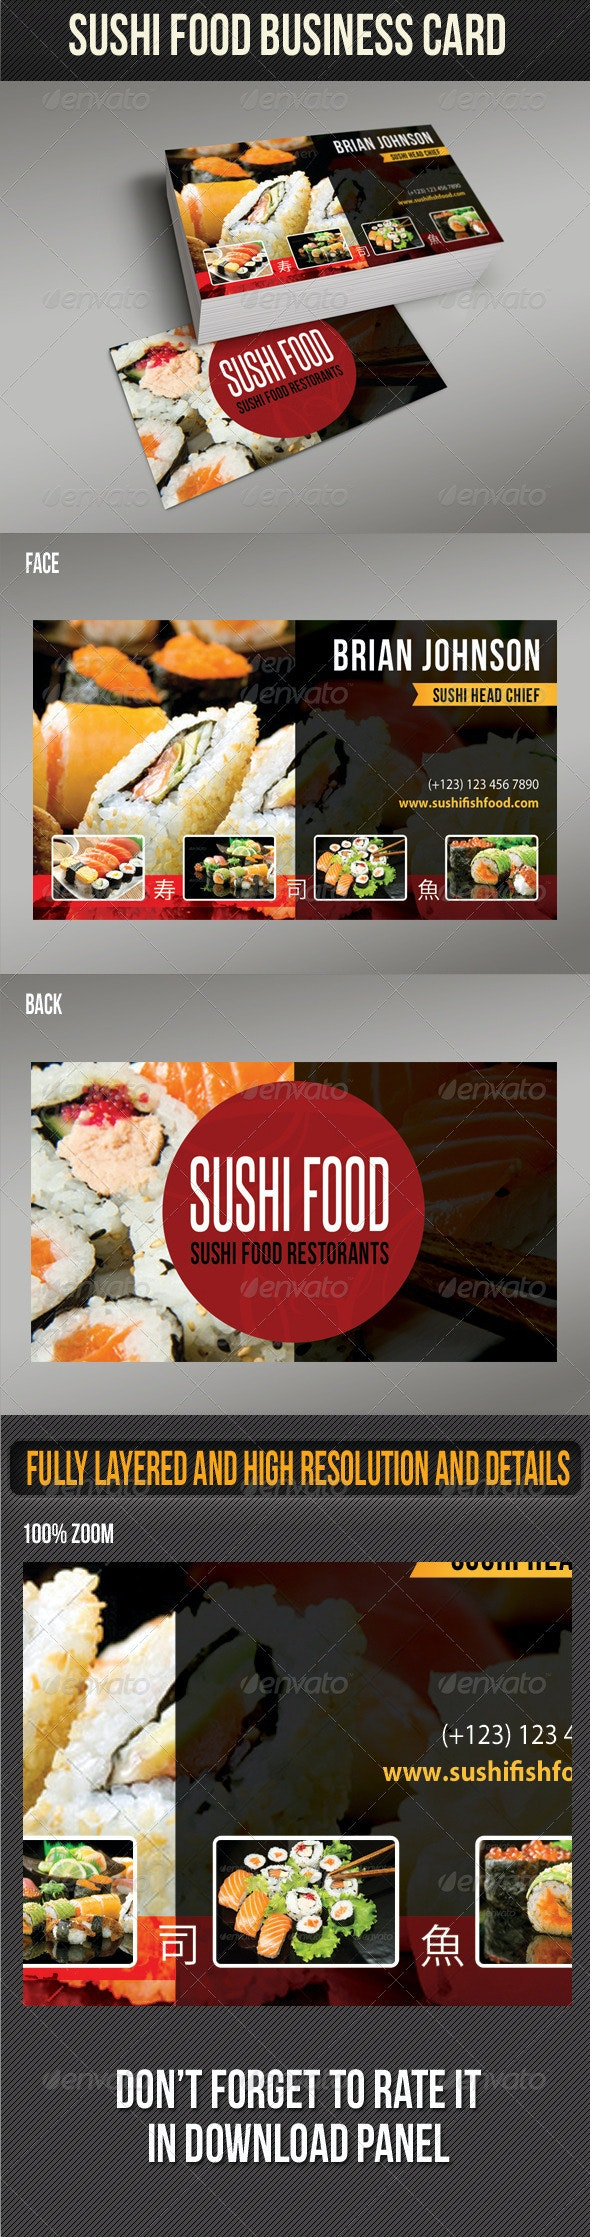 Sushi Food Business Card 02 - Industry Specific Business Cards